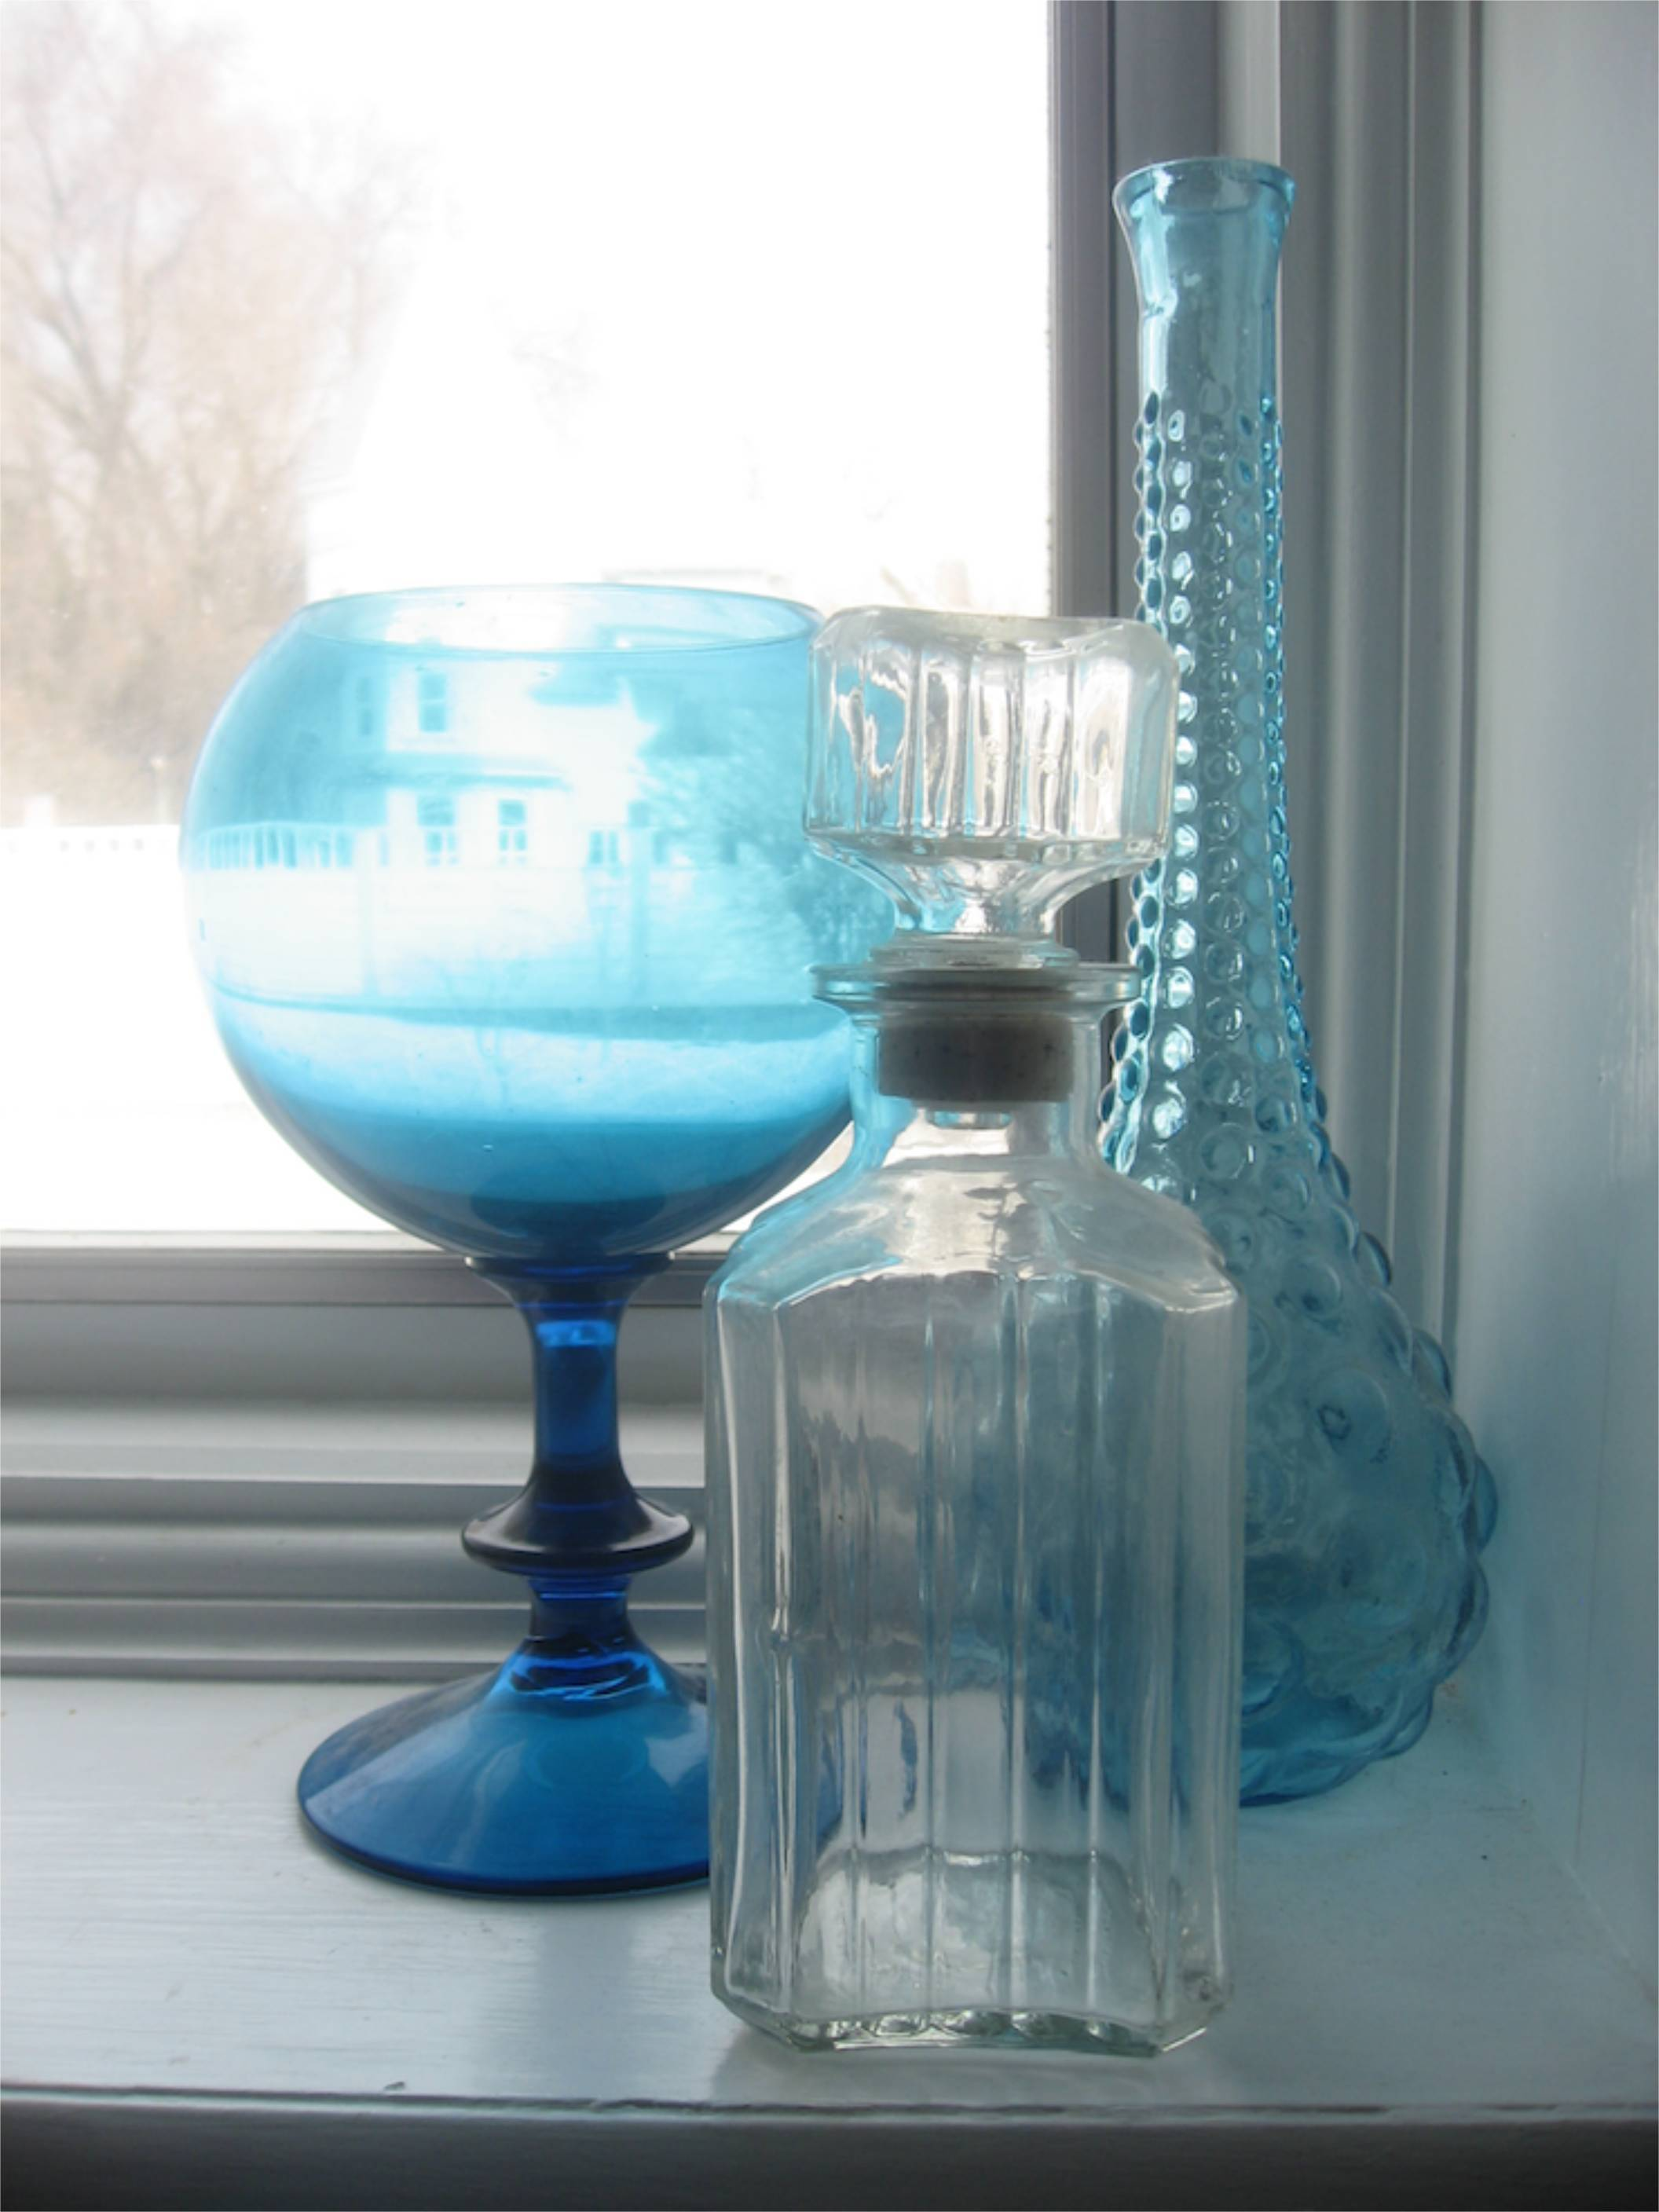 blue glass in window